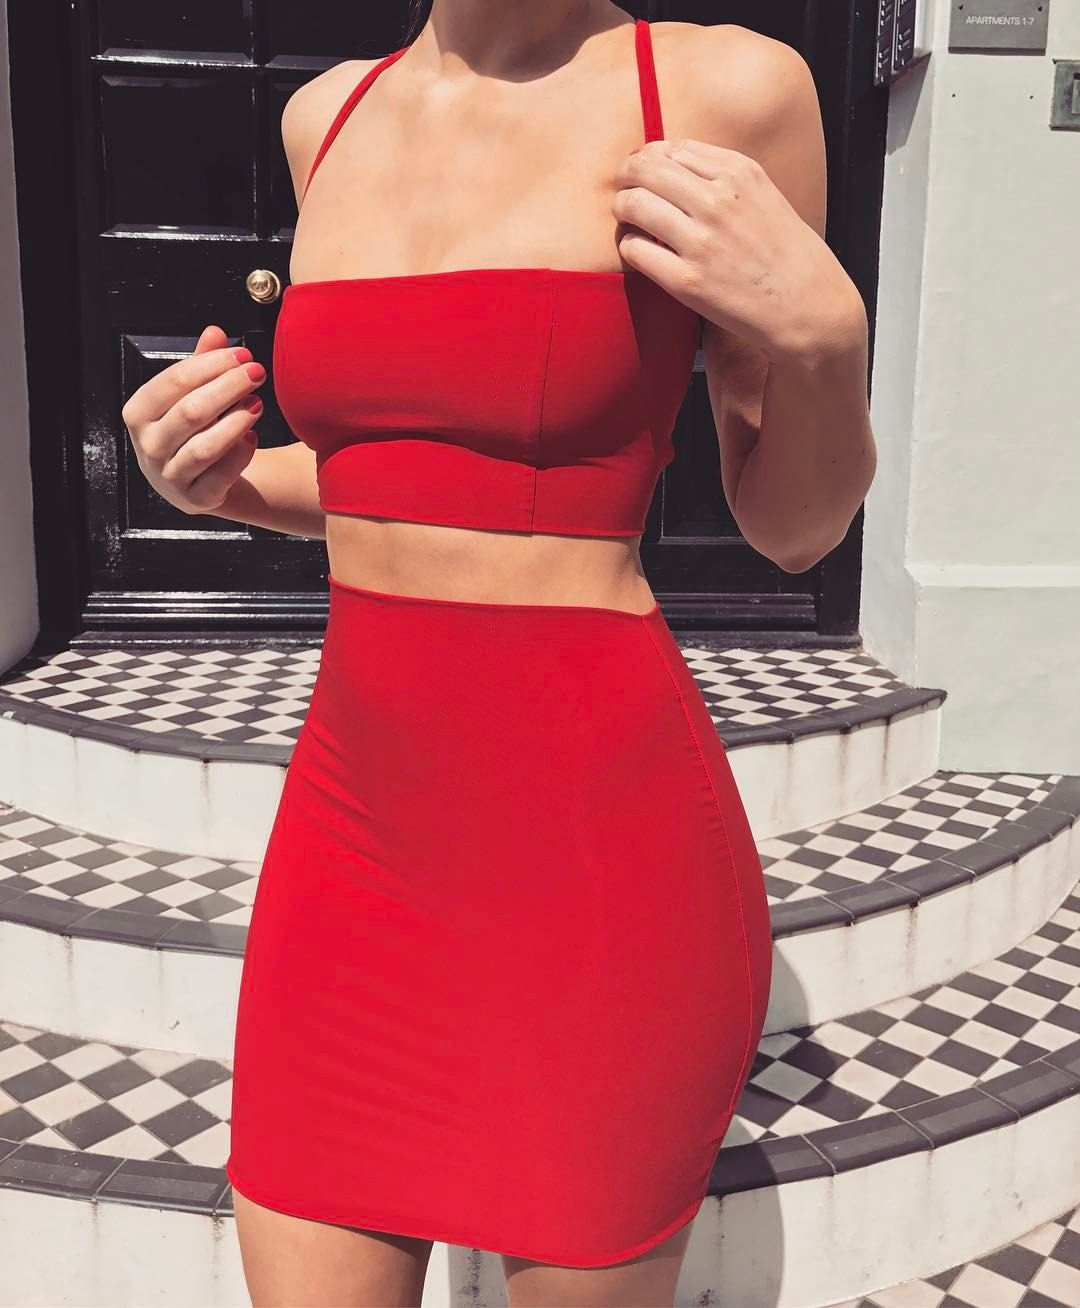 cc6f62cee Our 'Ralph' two piece set in bright red // www.boomboomthelabel.com ...